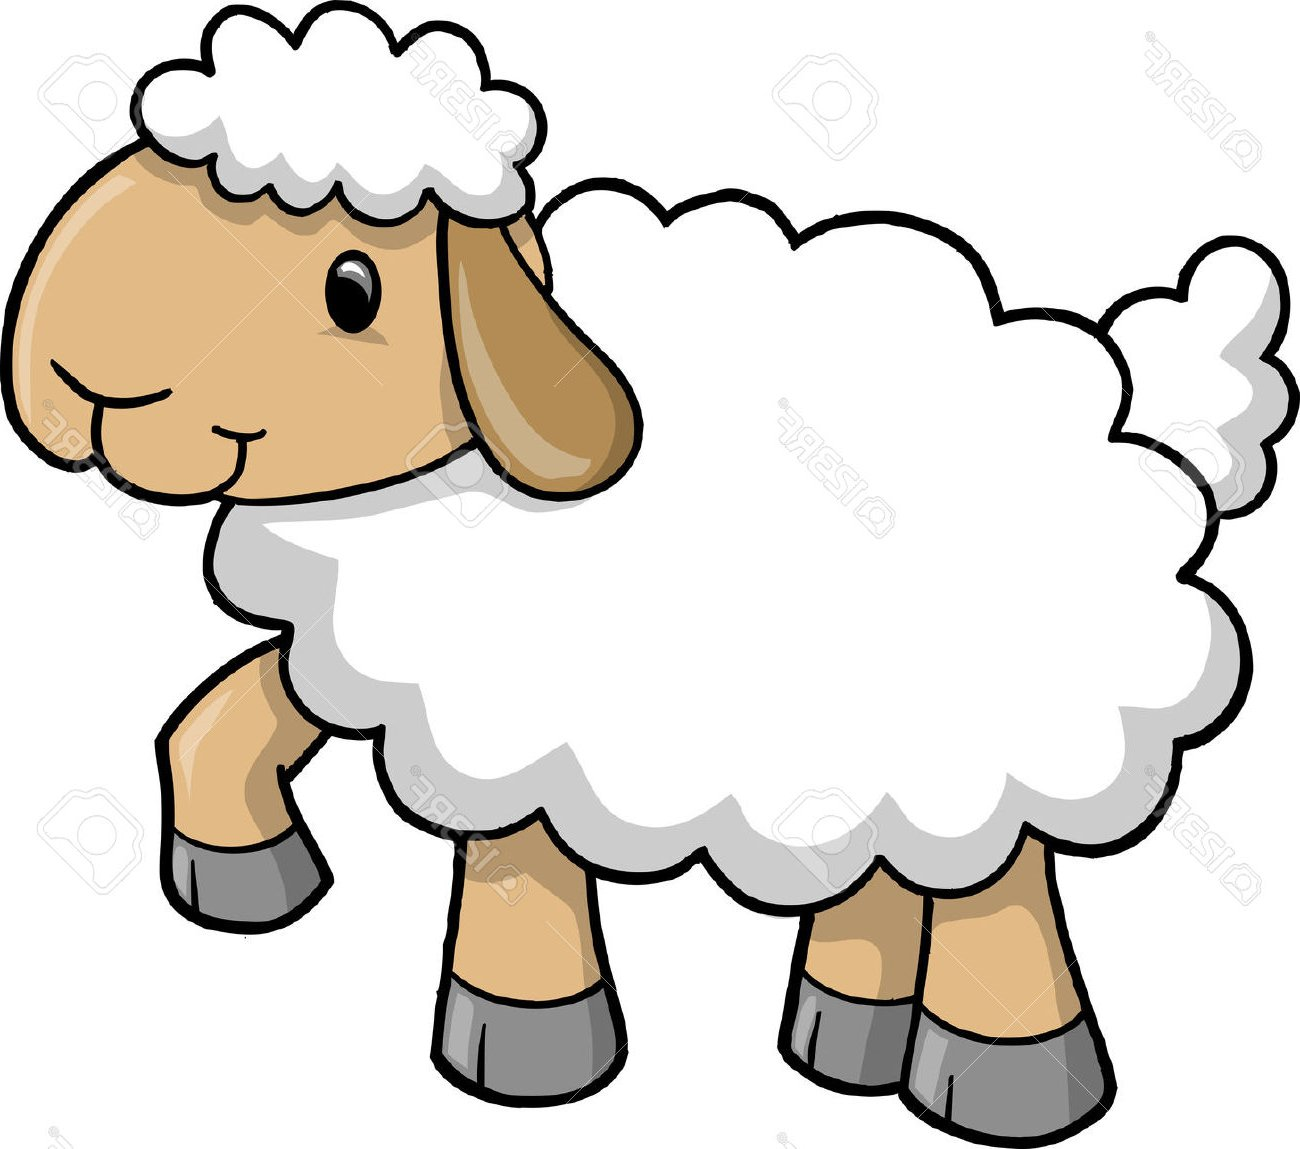 Clipart Of A Sheep.